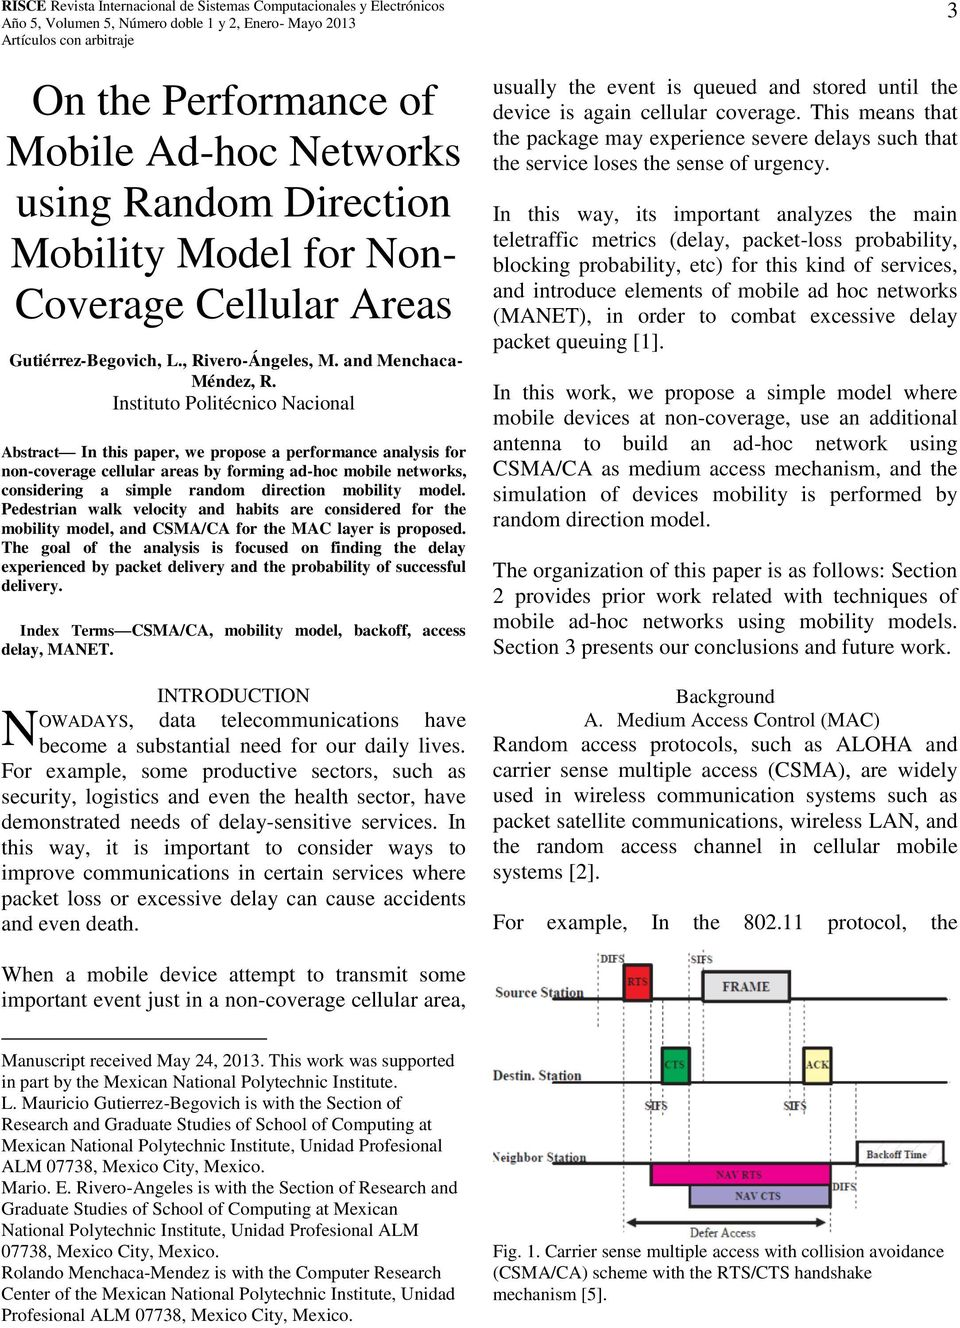 mobility model. Pedestrian walk velocity and habits are considered for the mobility model, and CSMA/CA for the MAC layer is proposed.